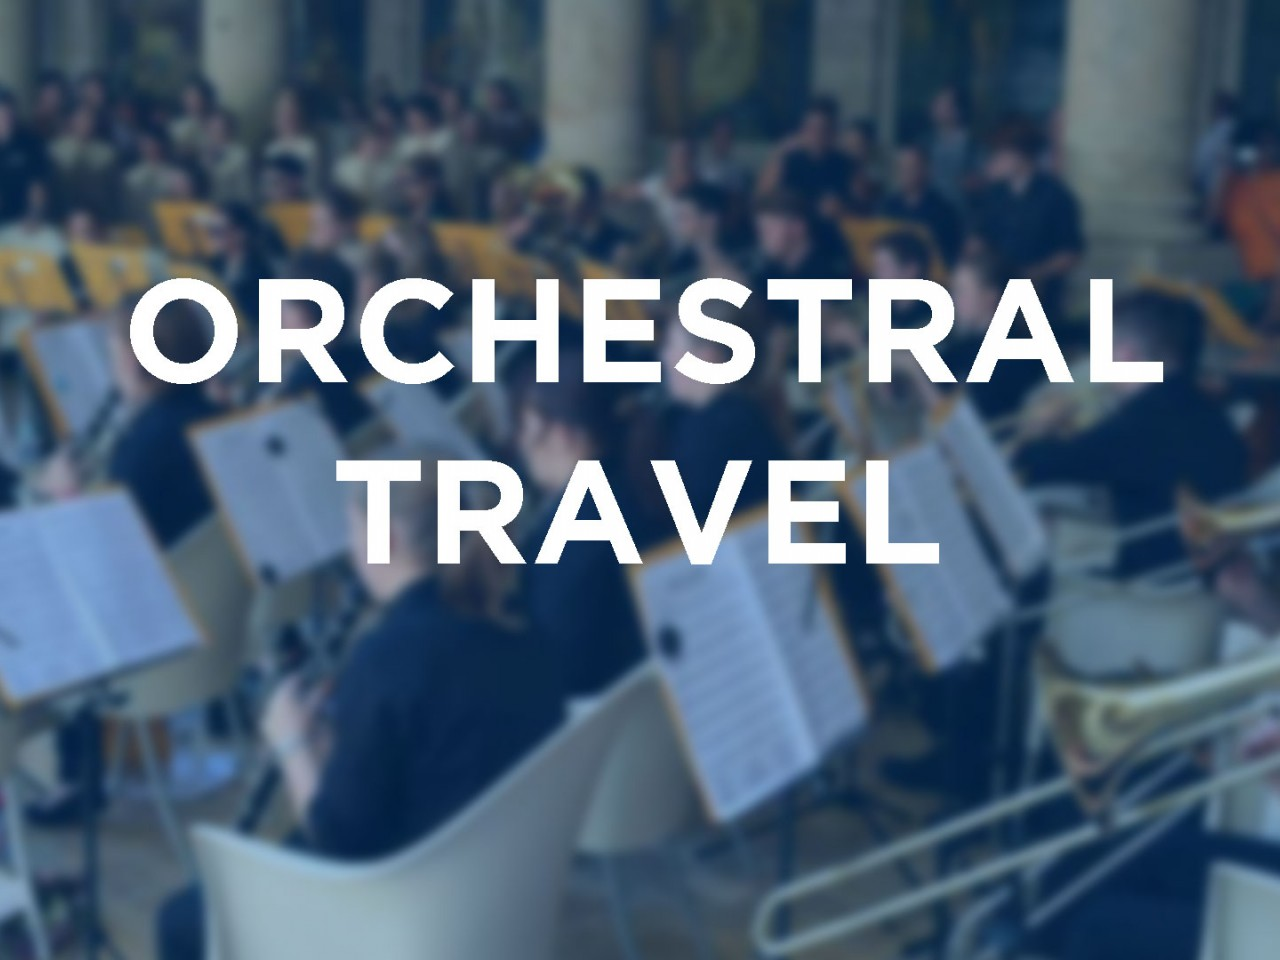 FESTIVALS AND COMPETITIONS FOR ORCHESTRAS